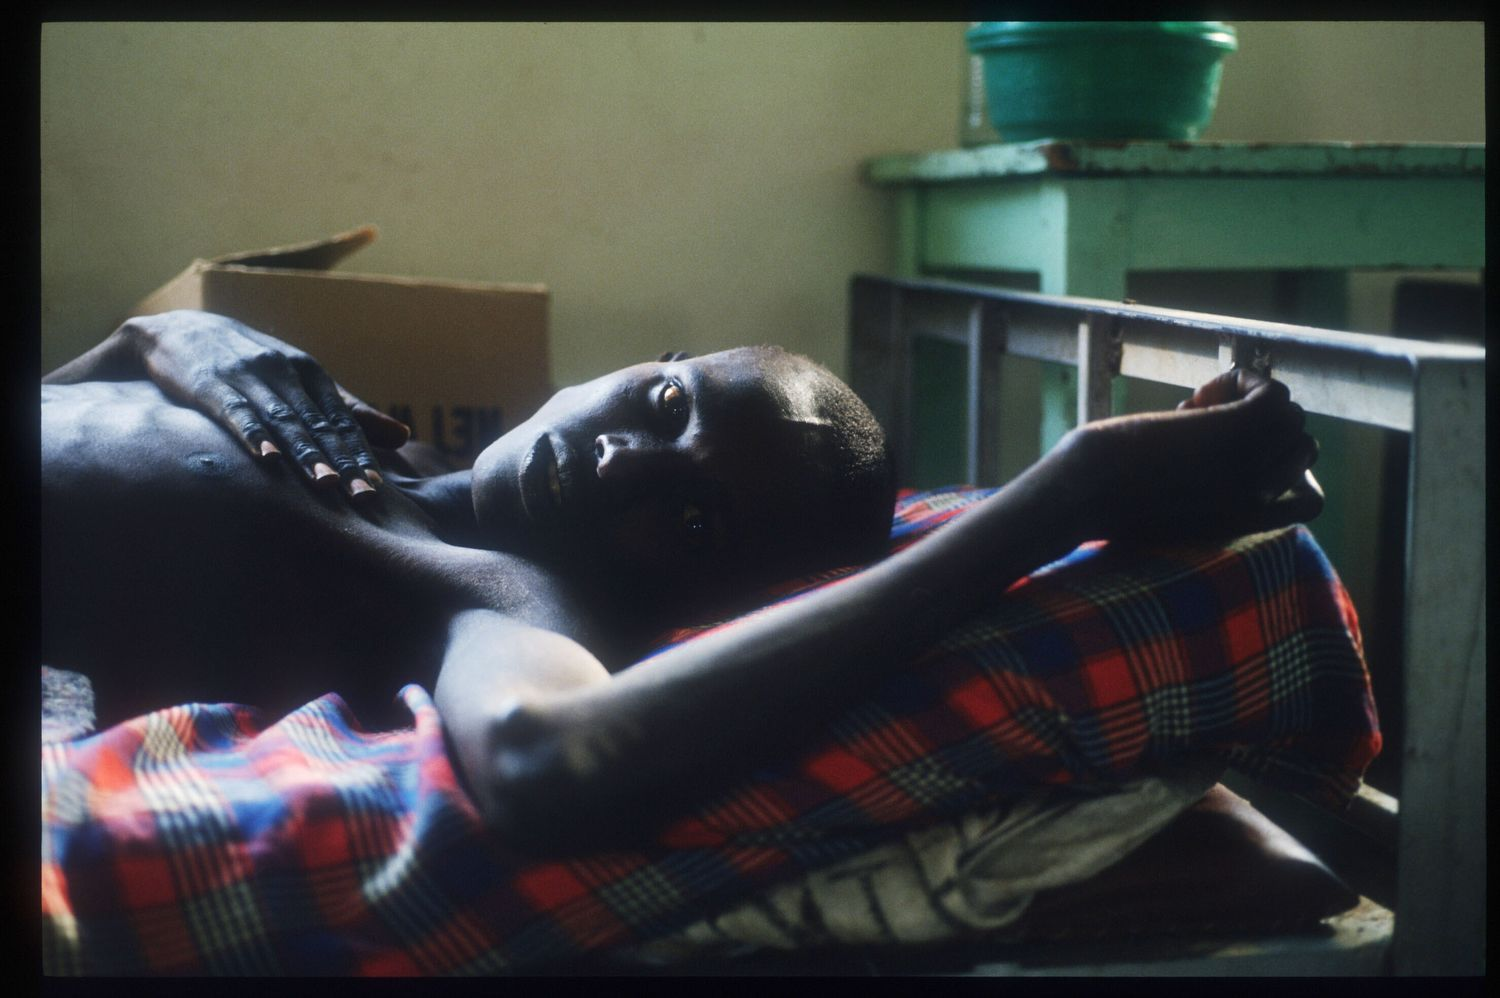 218317 91: A liberated refugee lies in Kabgayi Hospital May 25, 1994 in Rwanda. Following the assassination of President Juvenal Habyarimana in April, 1994 genocide of unprecedented swiftness left up to one million Tutsis and moderate Hutus dead at the hands of organized bands of militia by early July, 1994. (Photo by Scott Peterson/Liaison)